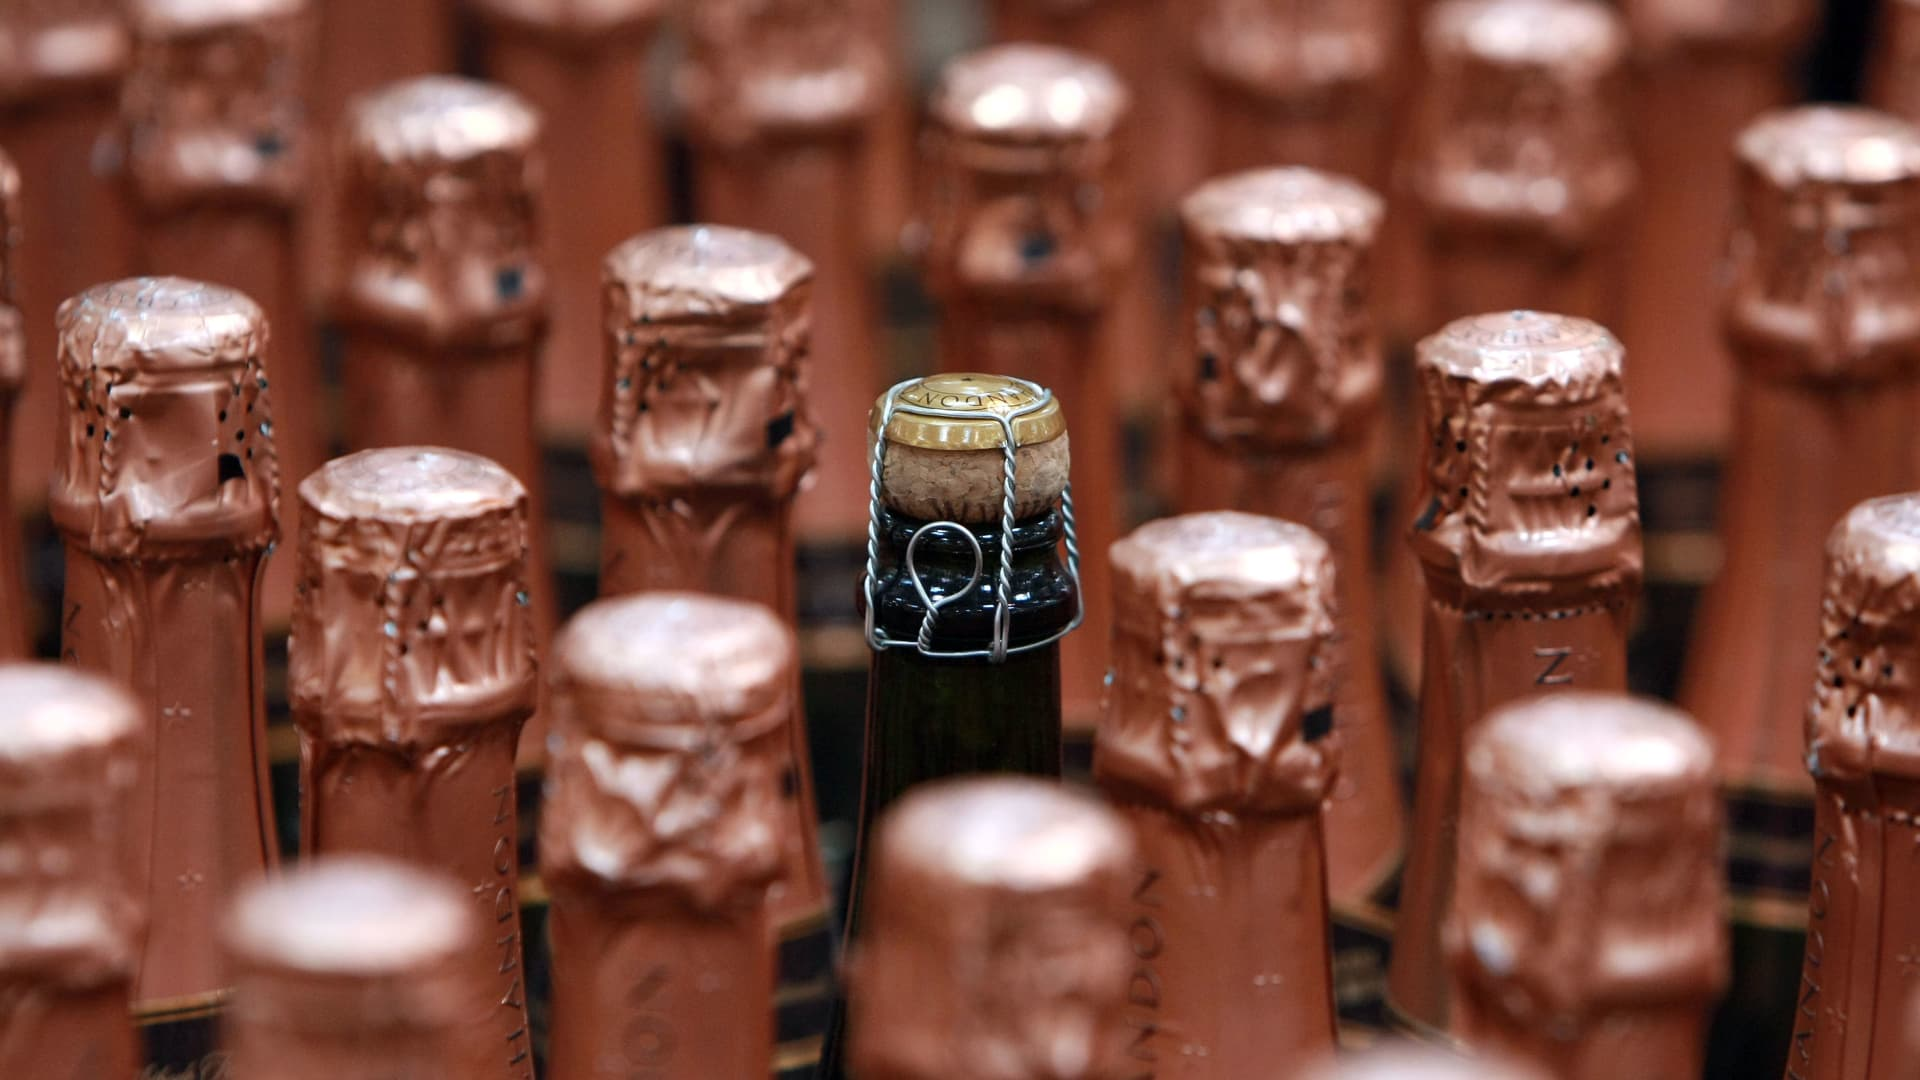 Bottles of sparkling wine are seen in San Francisco, California.